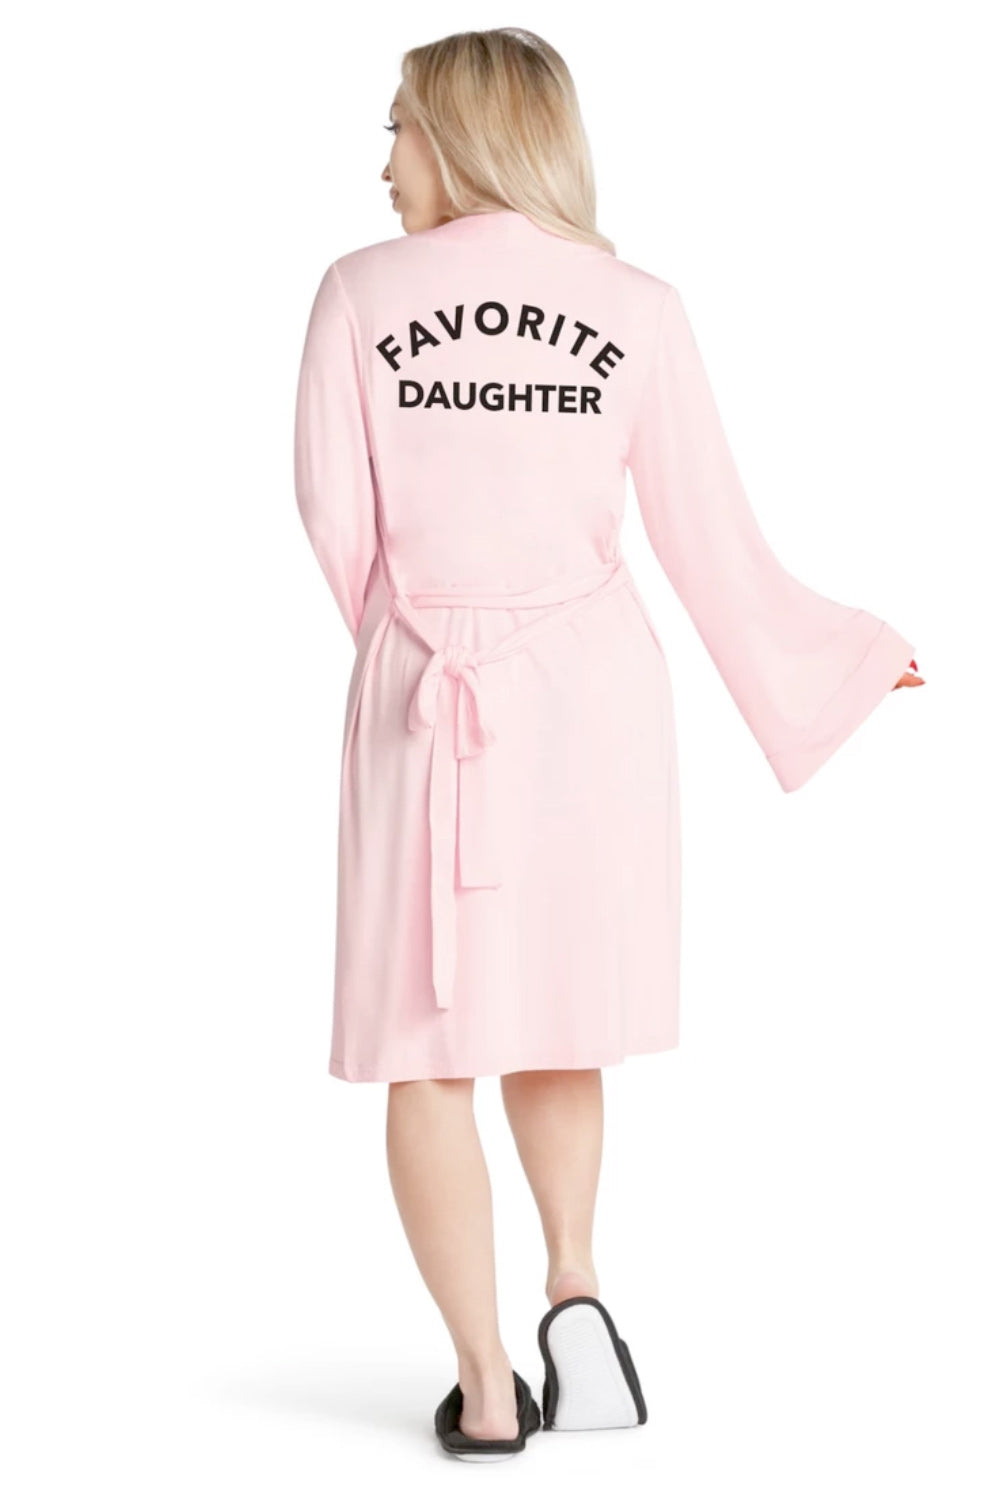 LIGHTWEIGHT ROBE - Favorite Daughter